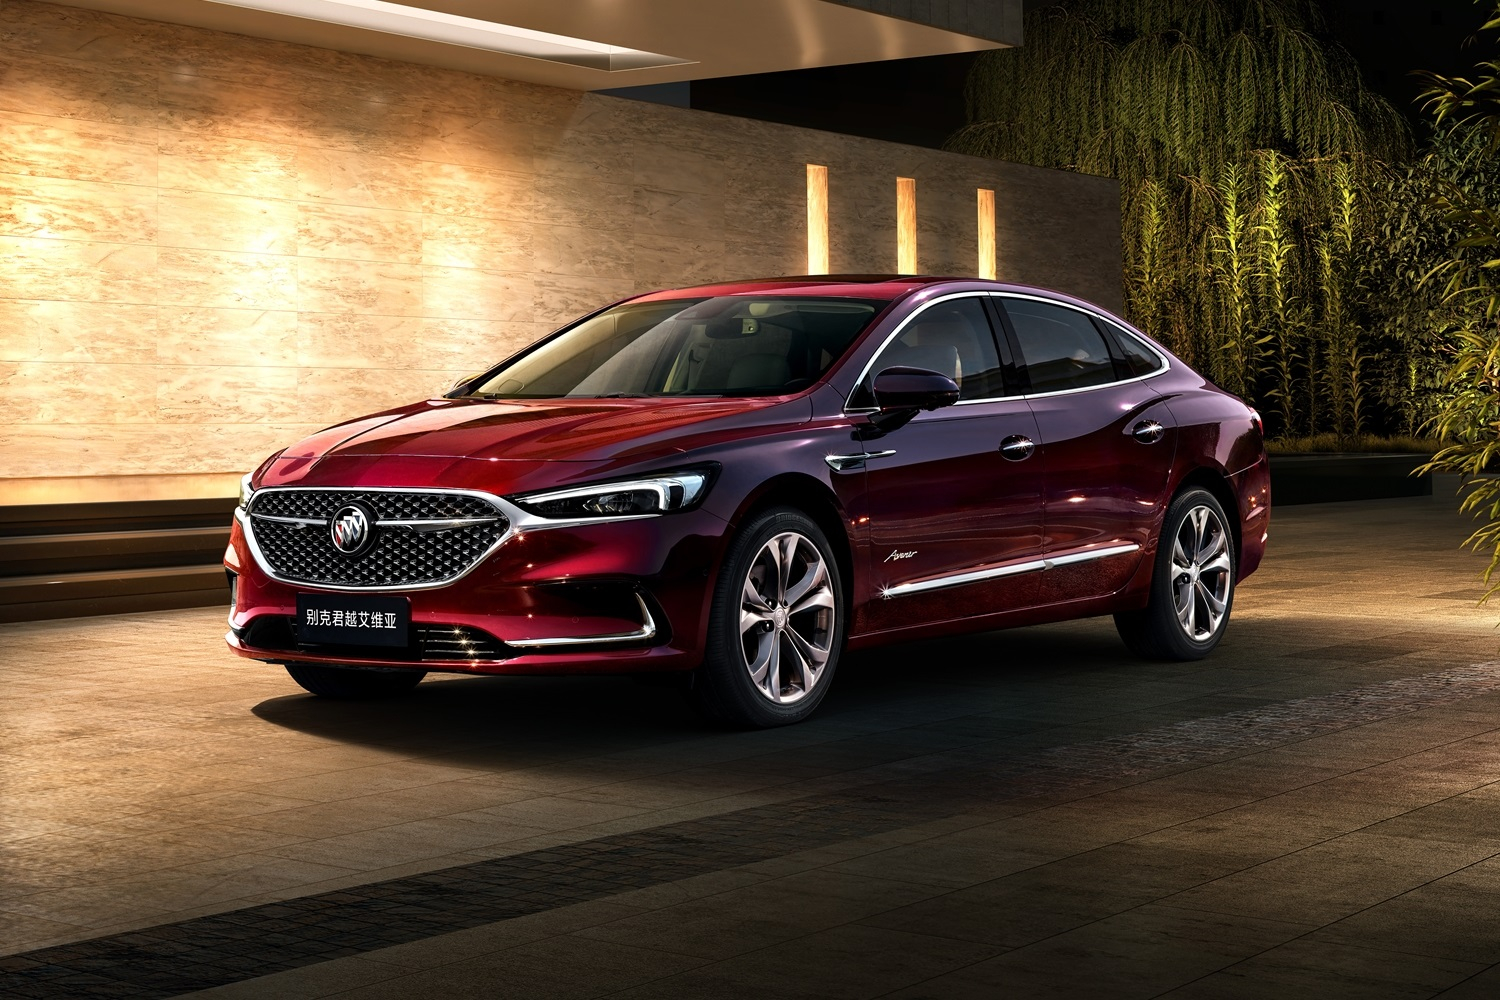 2021 Buick Lacrosse Gets More Refined Than Ever | Gm Authority New 2021 Buick Lacrosse Pictures, Cost, Trims